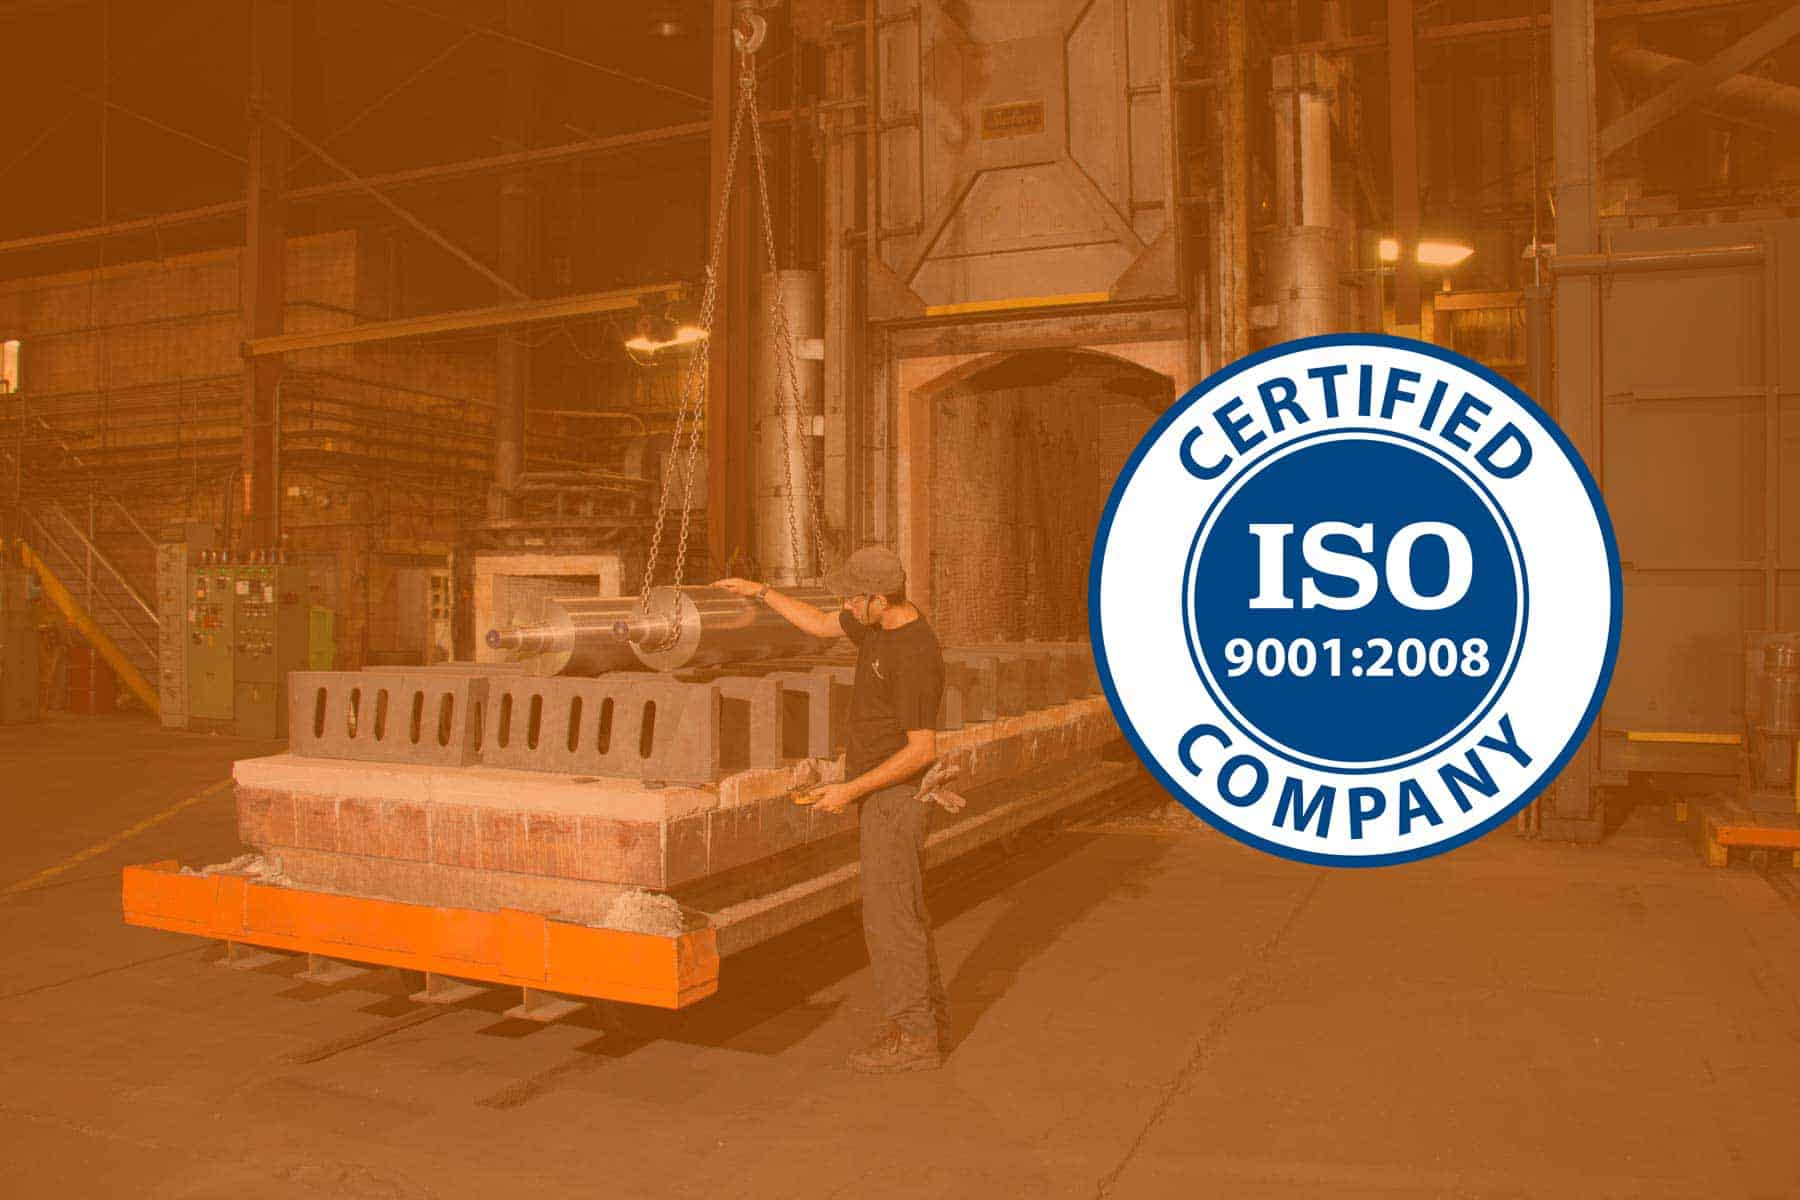 ISO 9001 Confirms Metals Engineering's Quality Focus